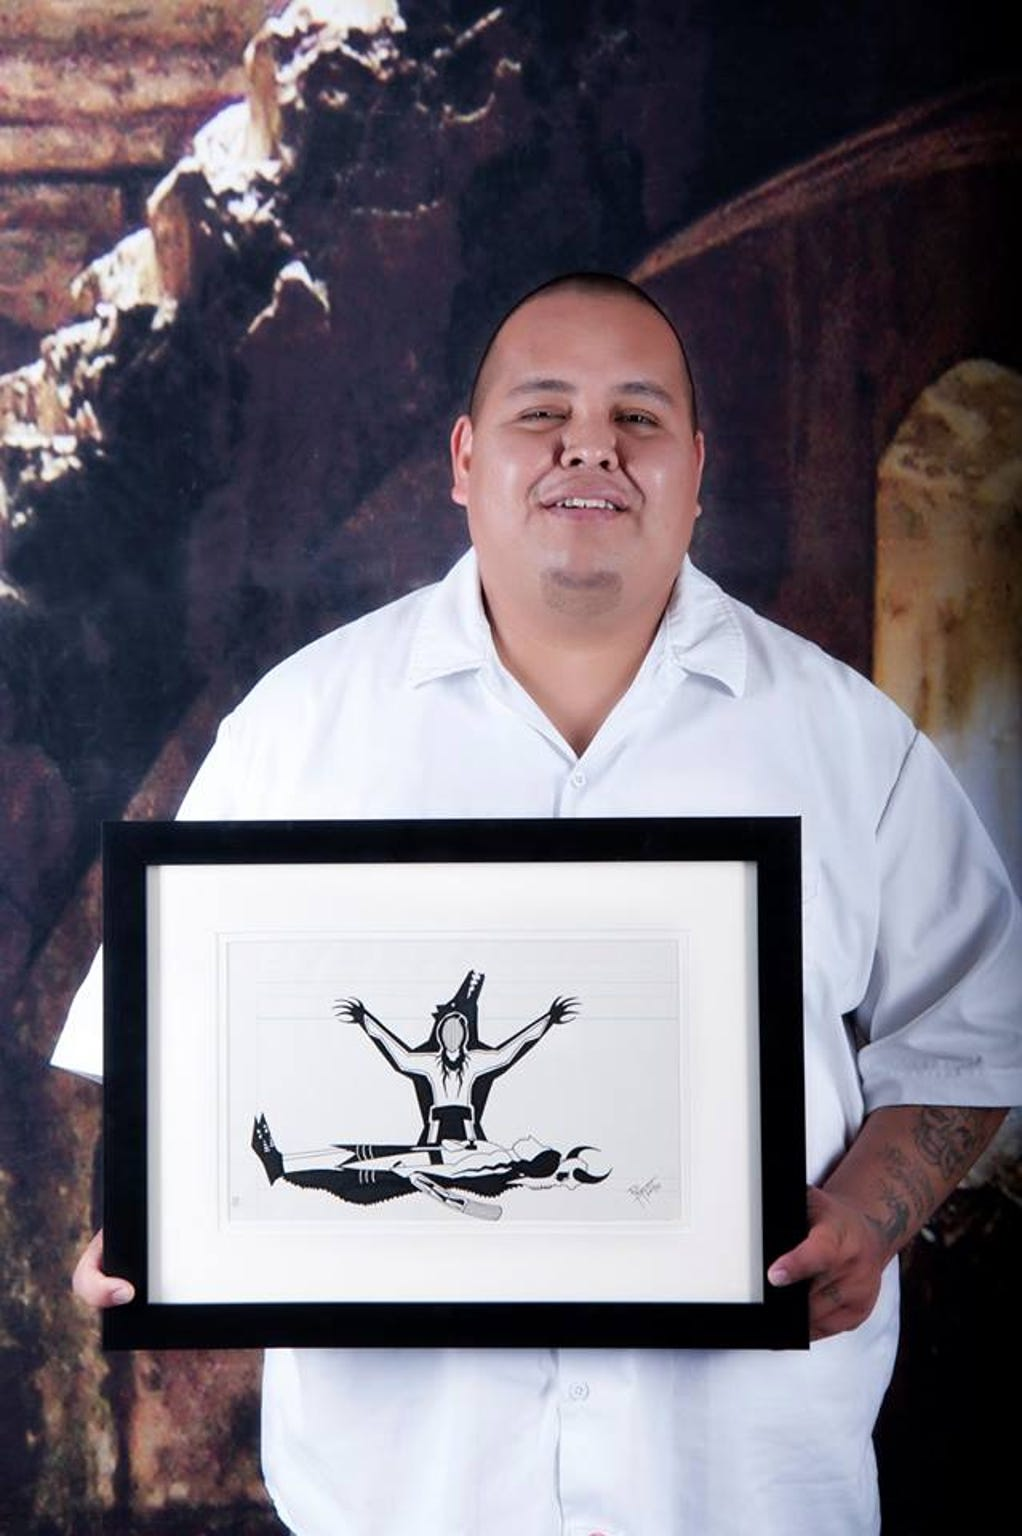 John Pepion, an artist and Blackfeet tribal member, said he made more than 60 art pieces for the Out West Art Show, which occurs during Western Art Week in Great Falls.